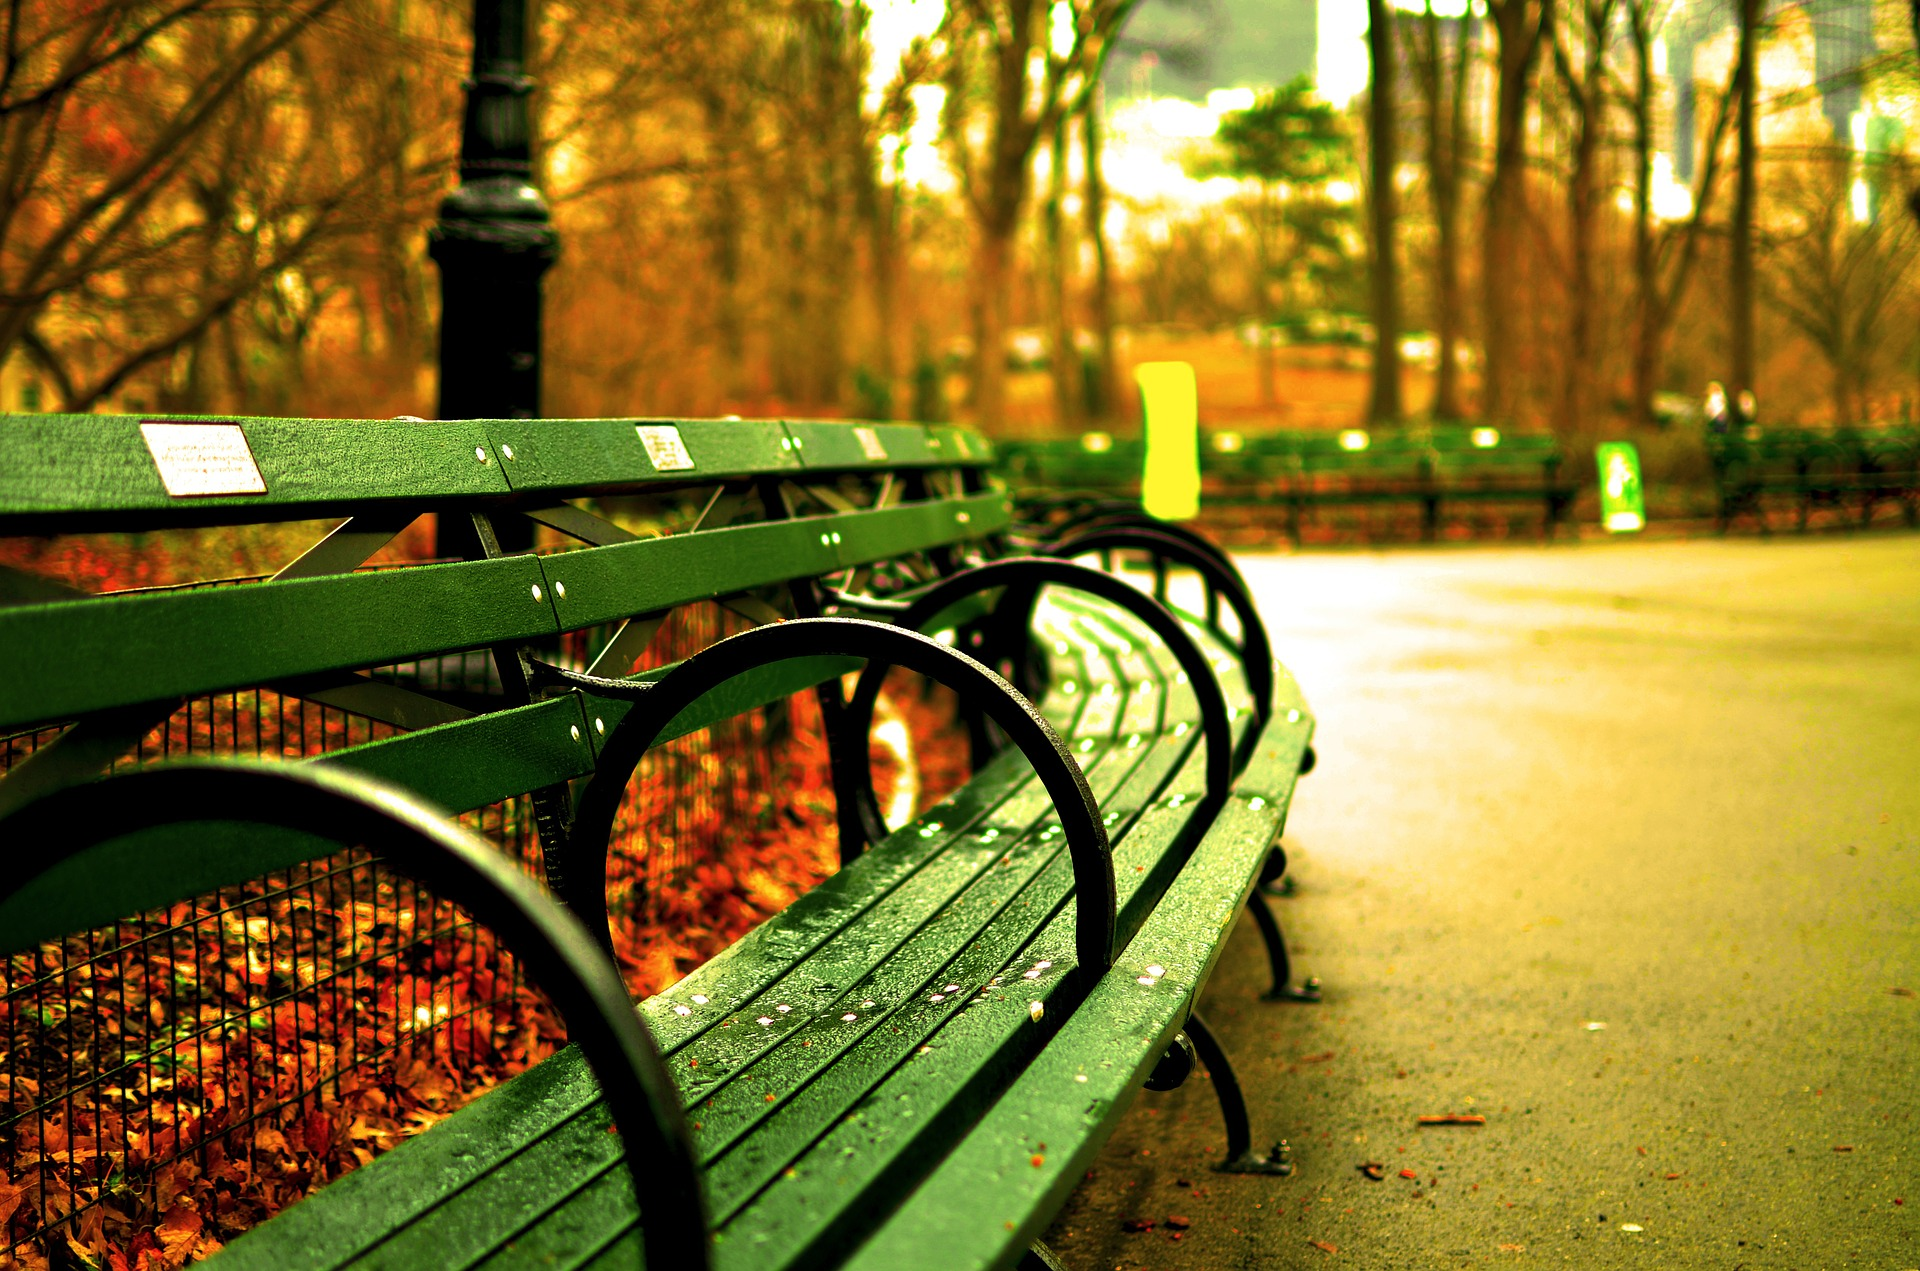 Central park, new york city, benches